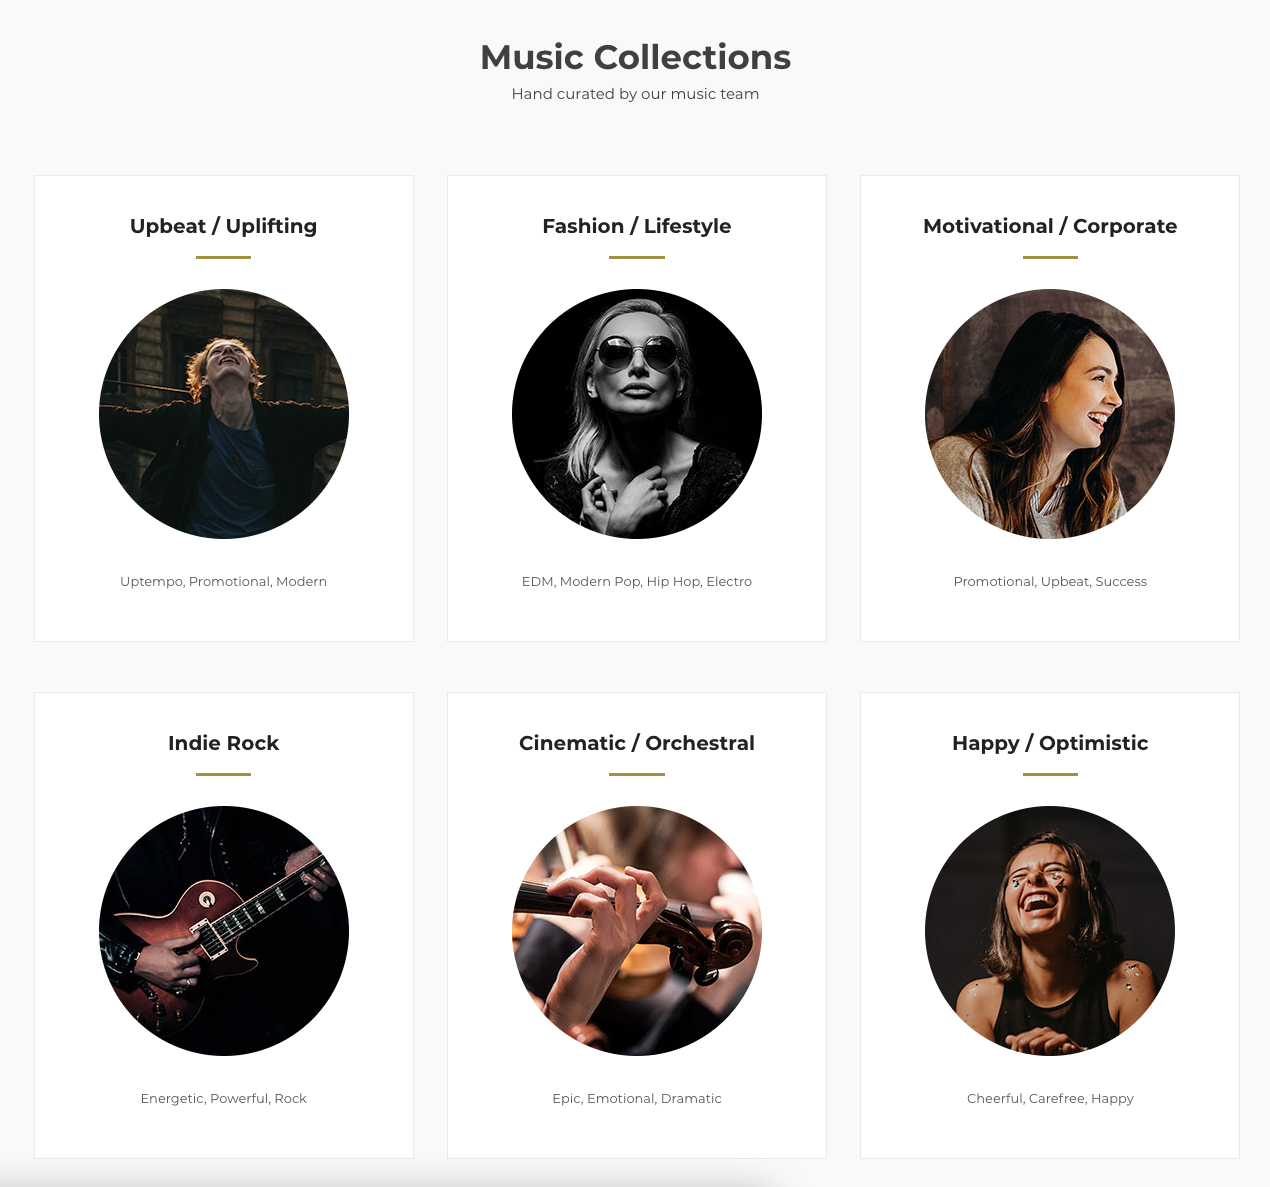 screenshot of the Foximusic website showcasing six hand-curated music collections